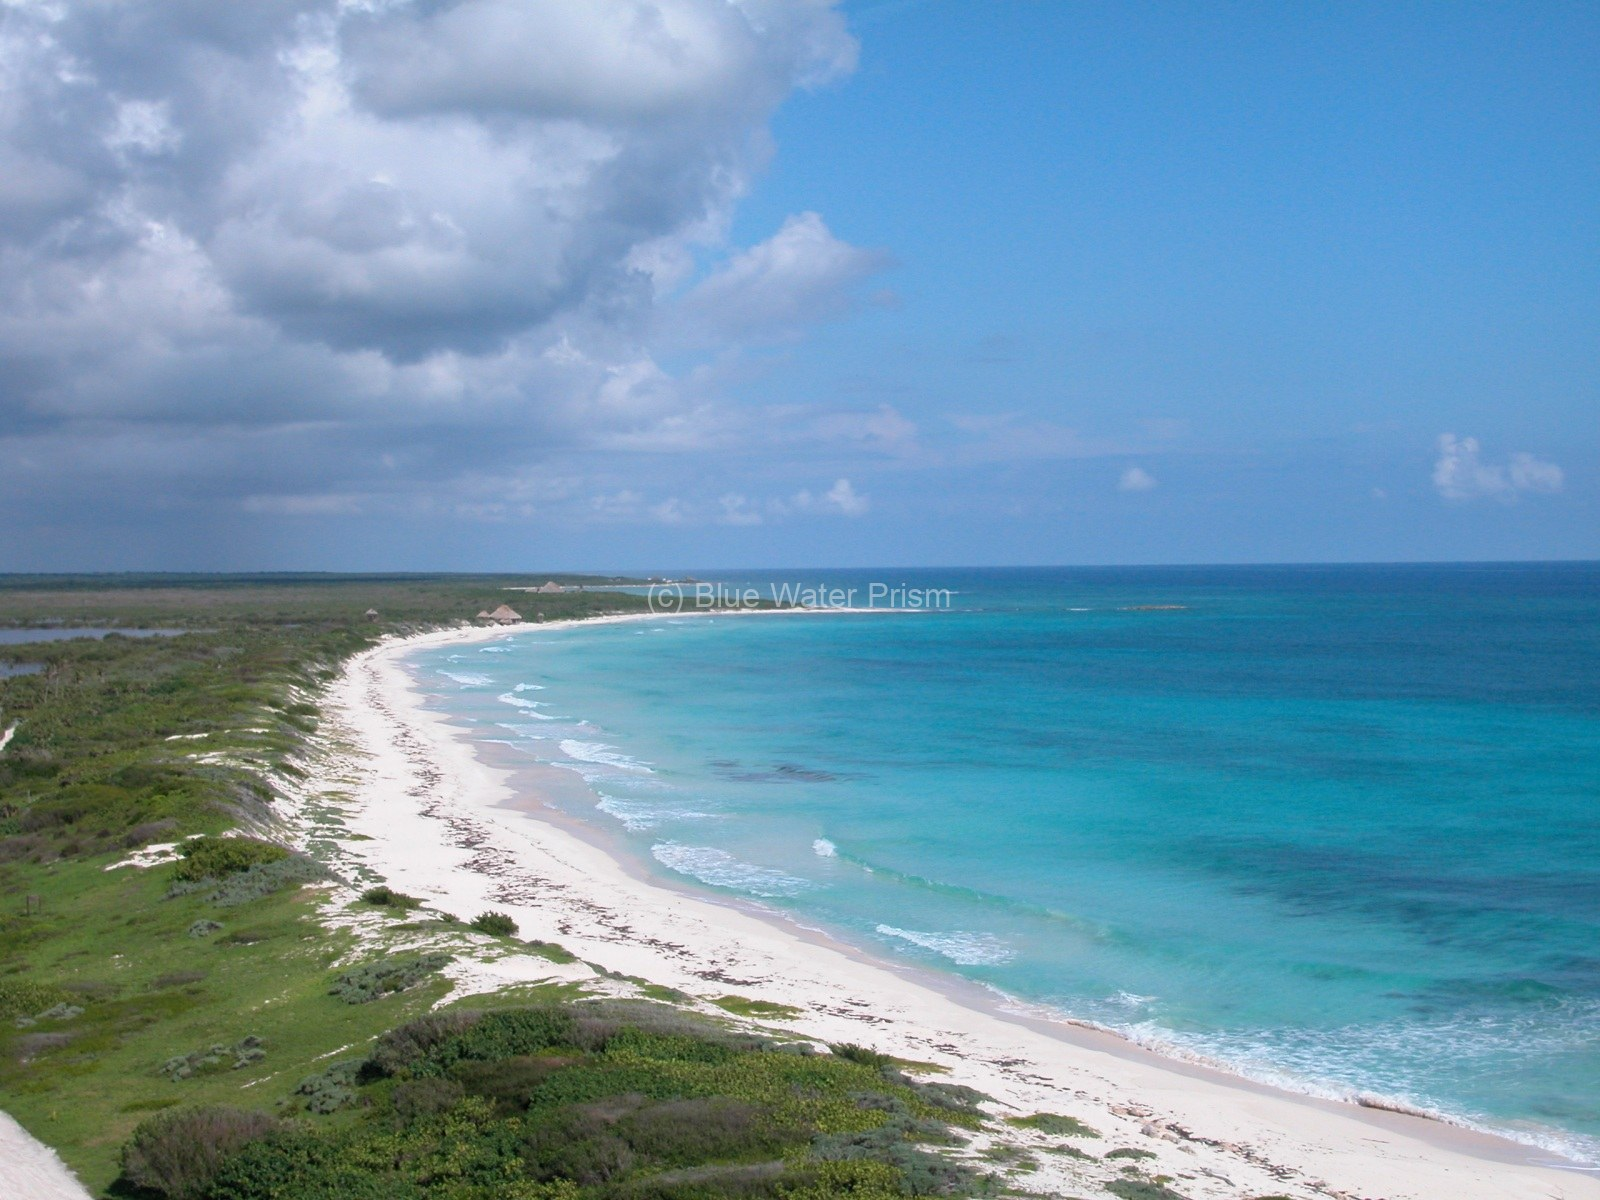 The East Side of Cozumel